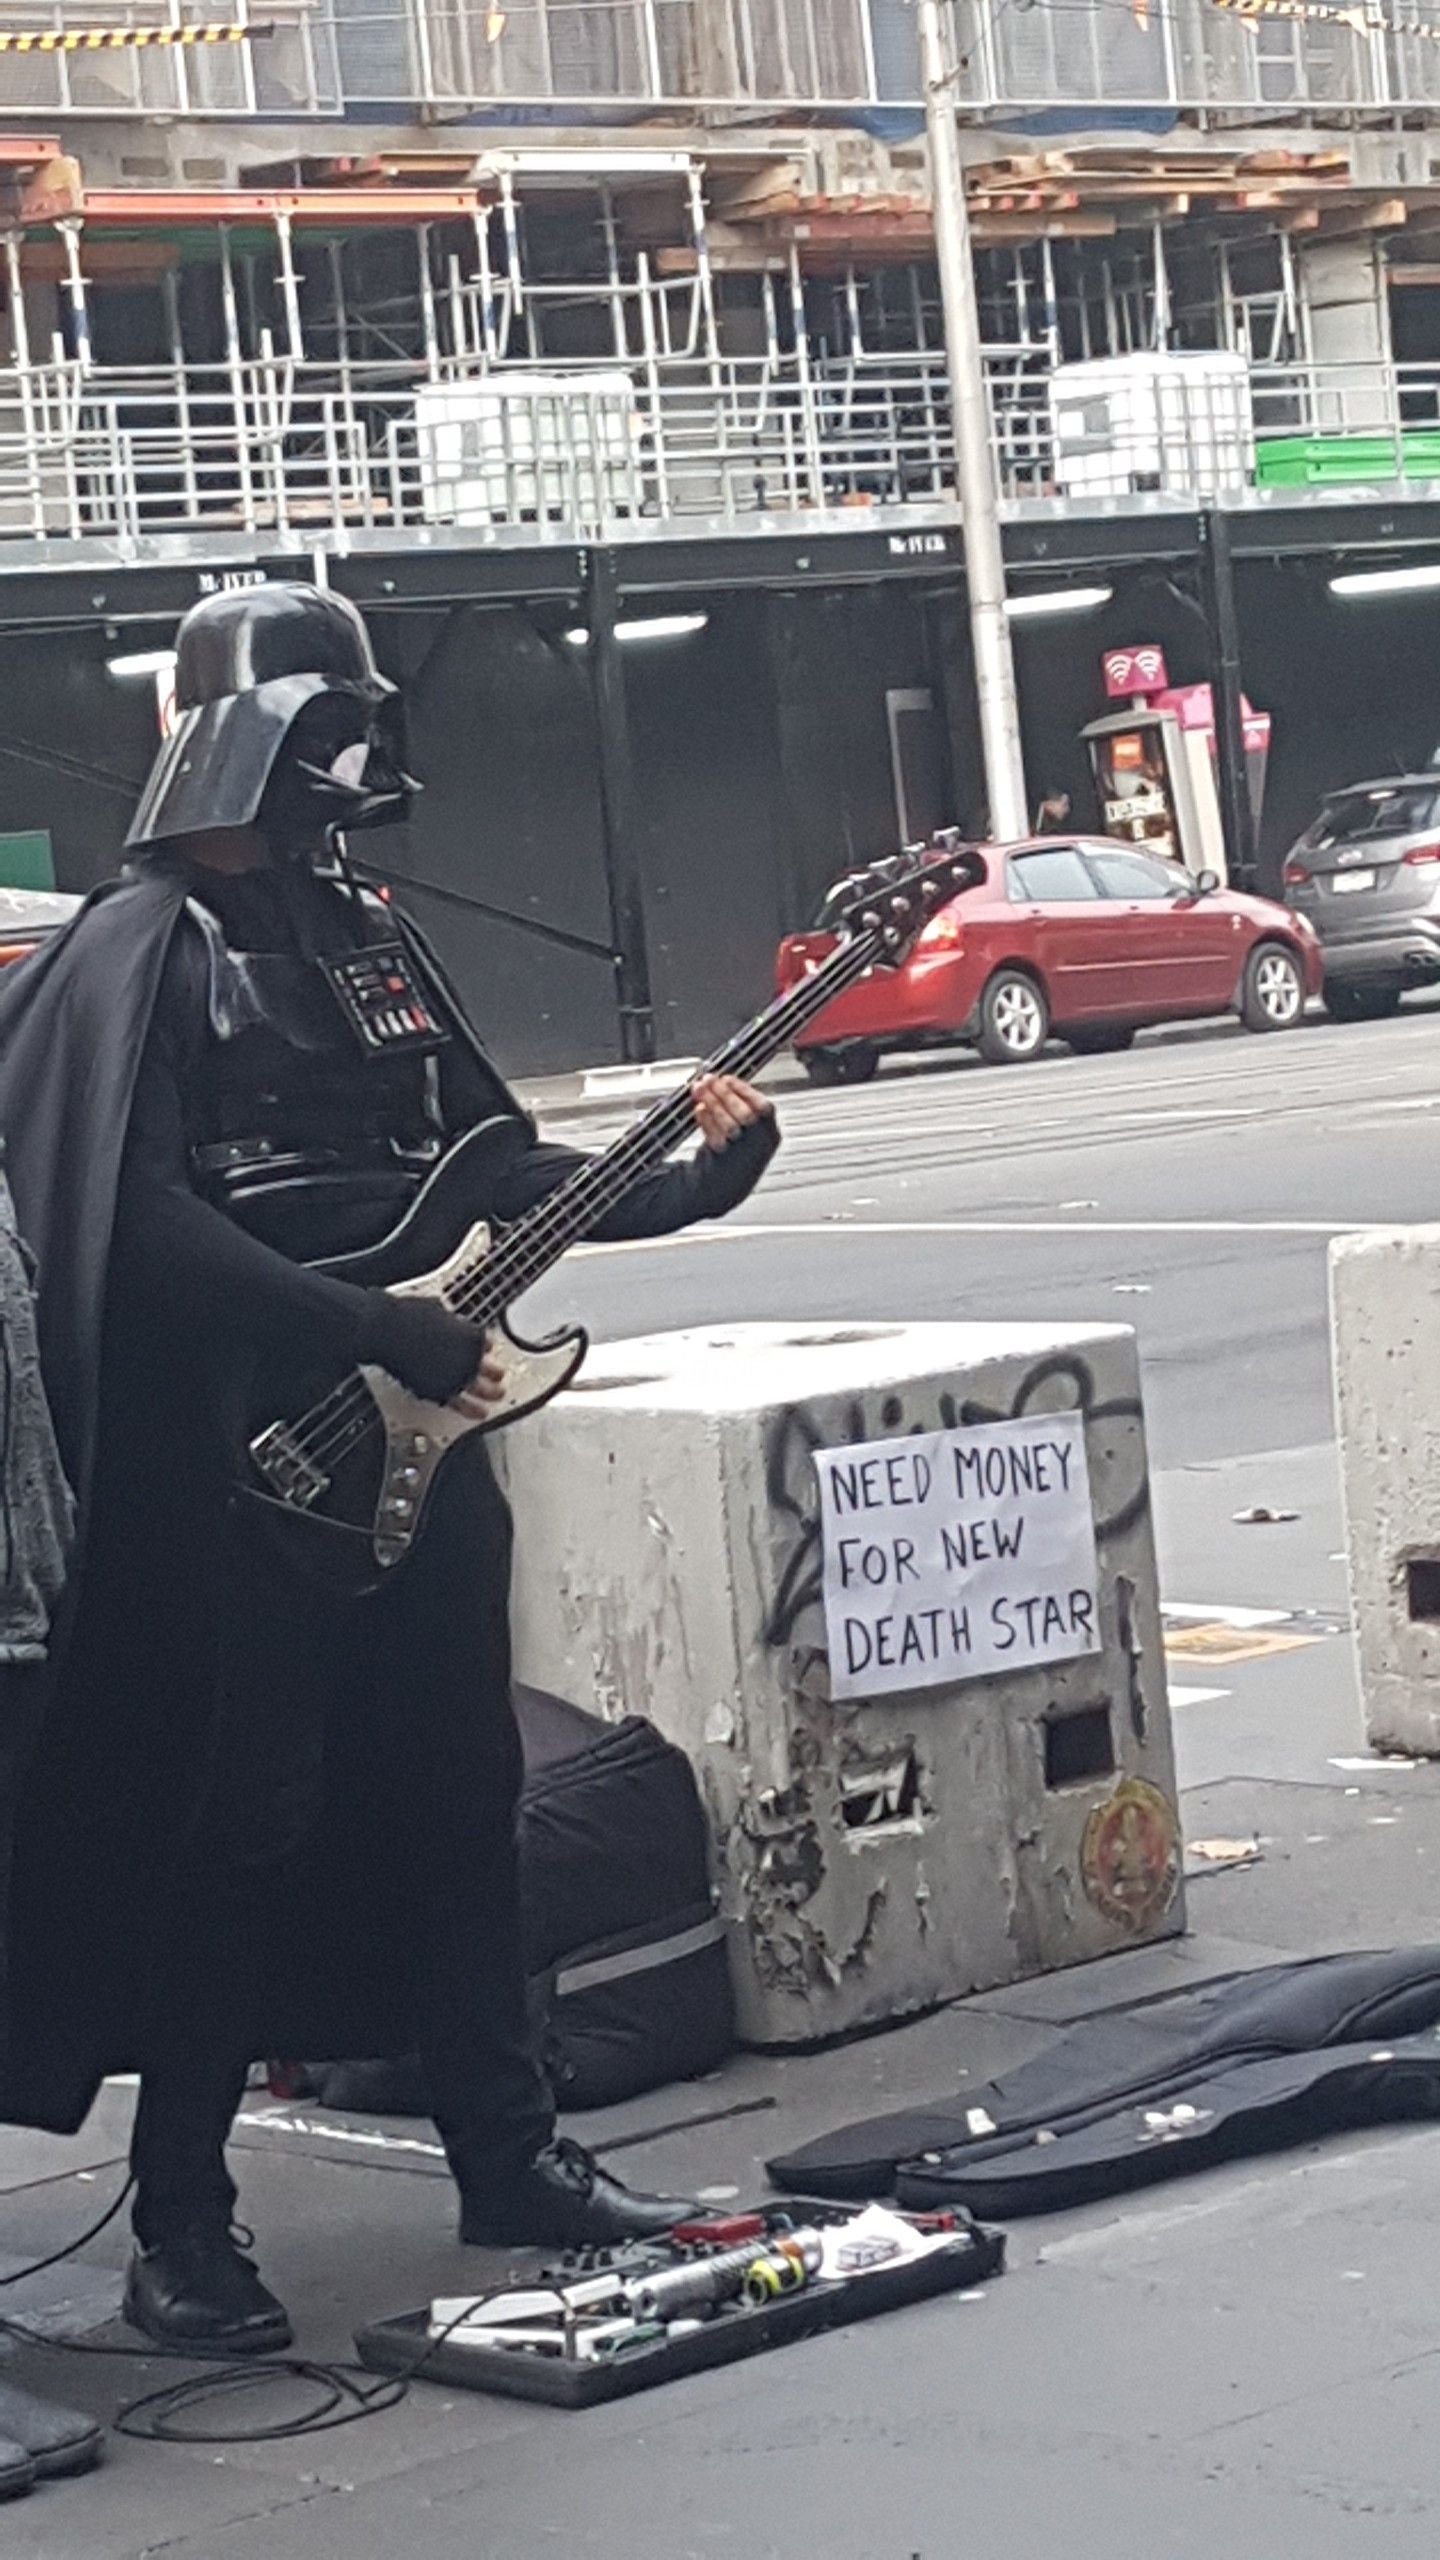 Times are tough for the Imperials.